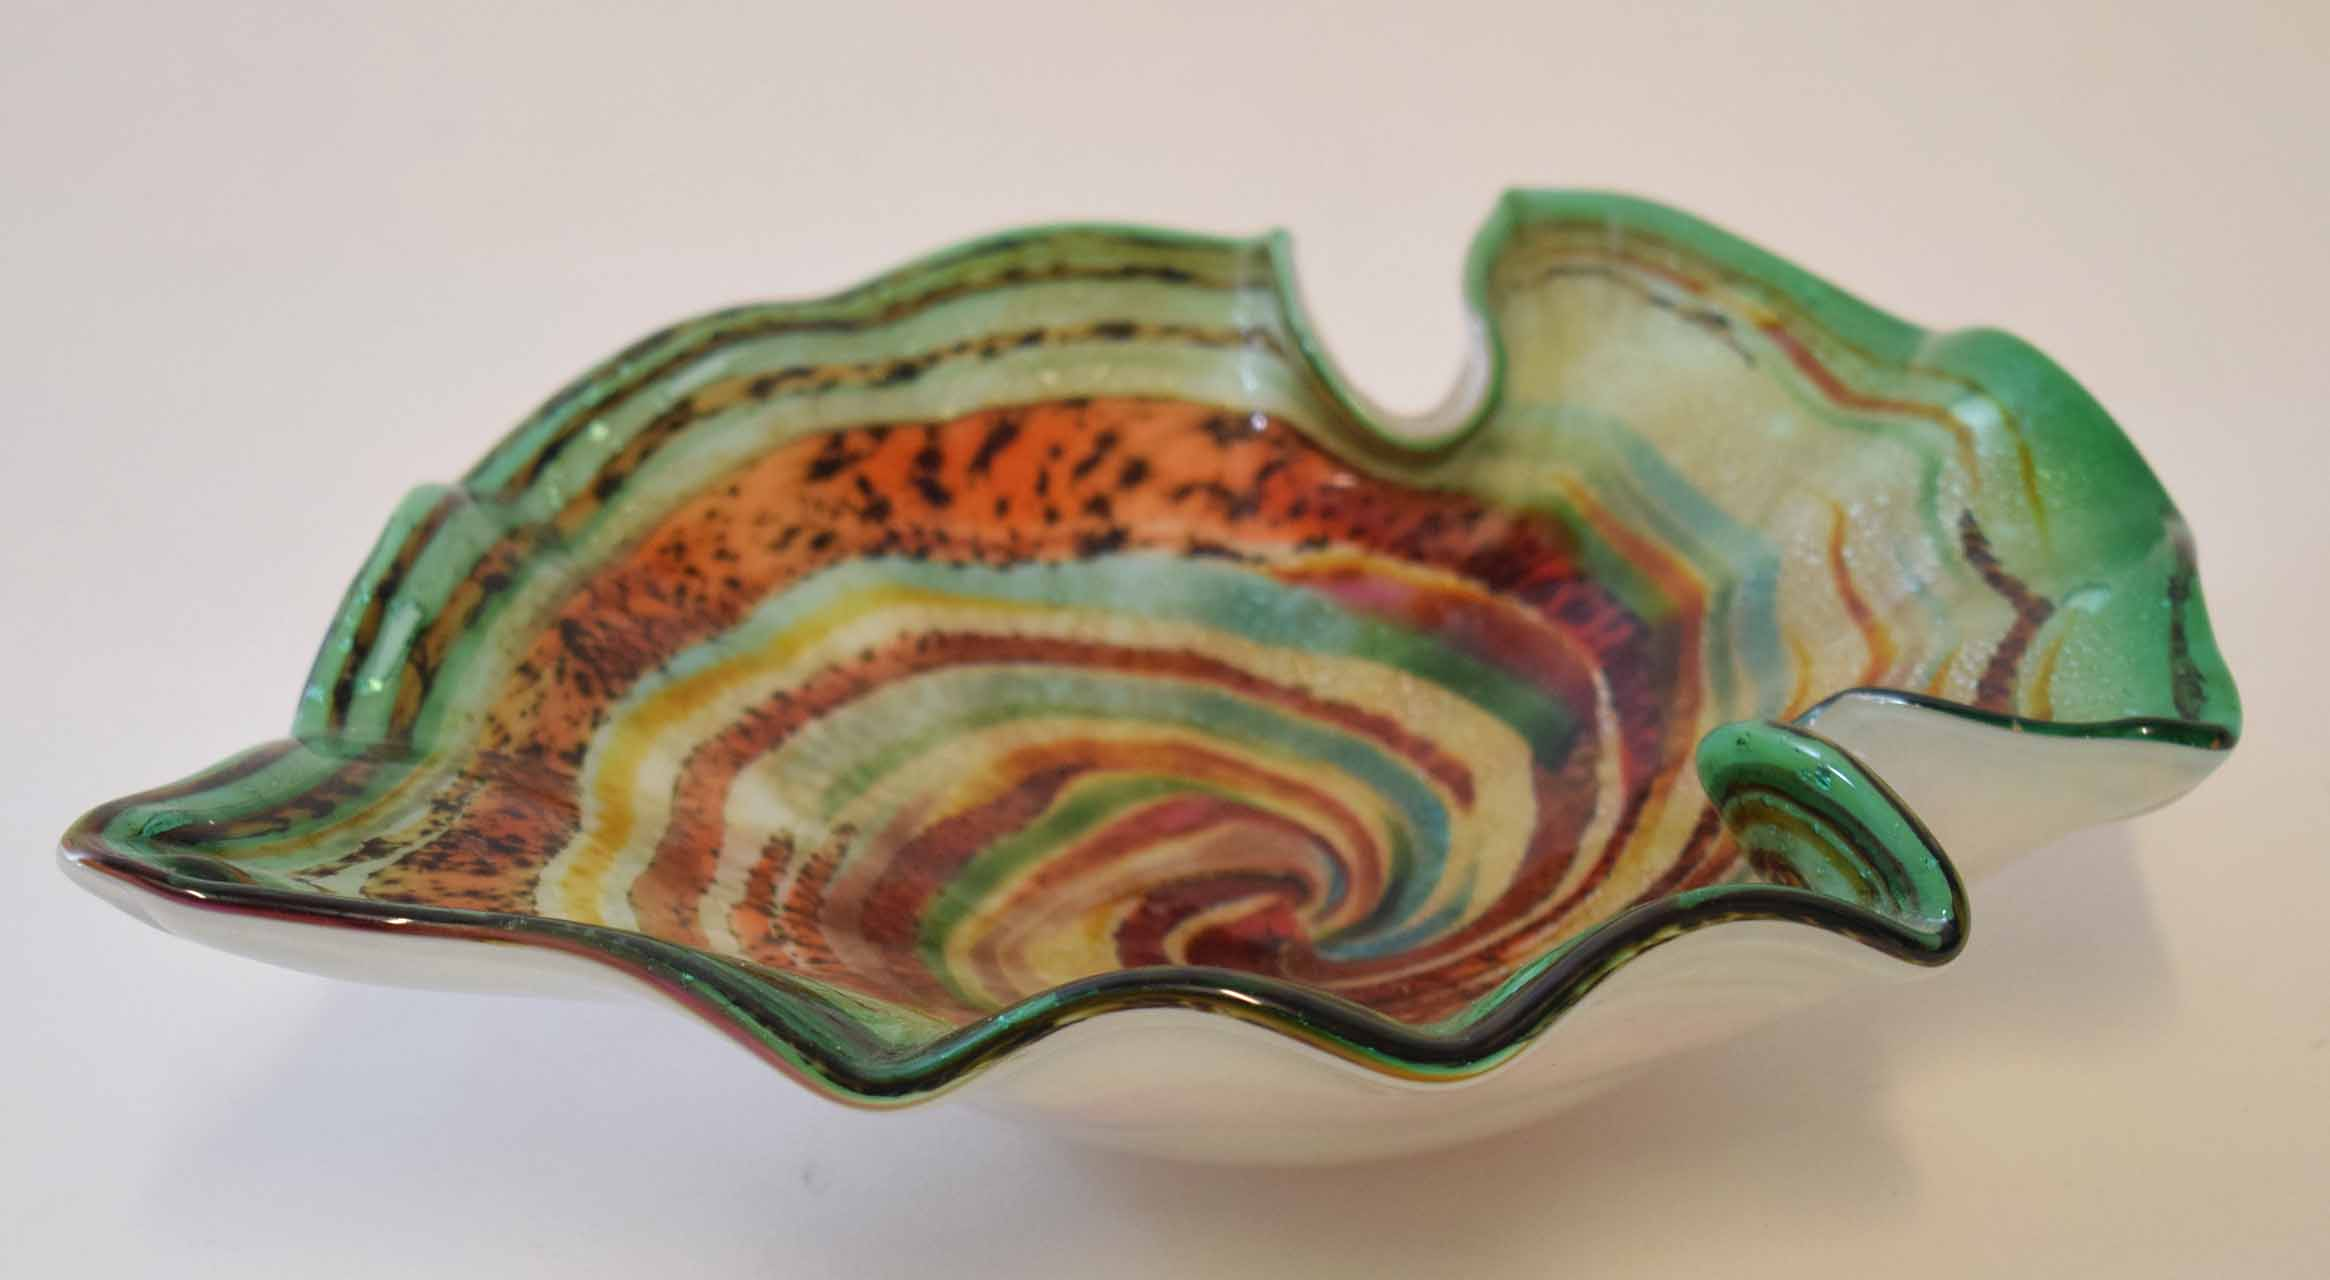 Lot 73 - Art glass bowl with swirling green and brown design, 17cm diam